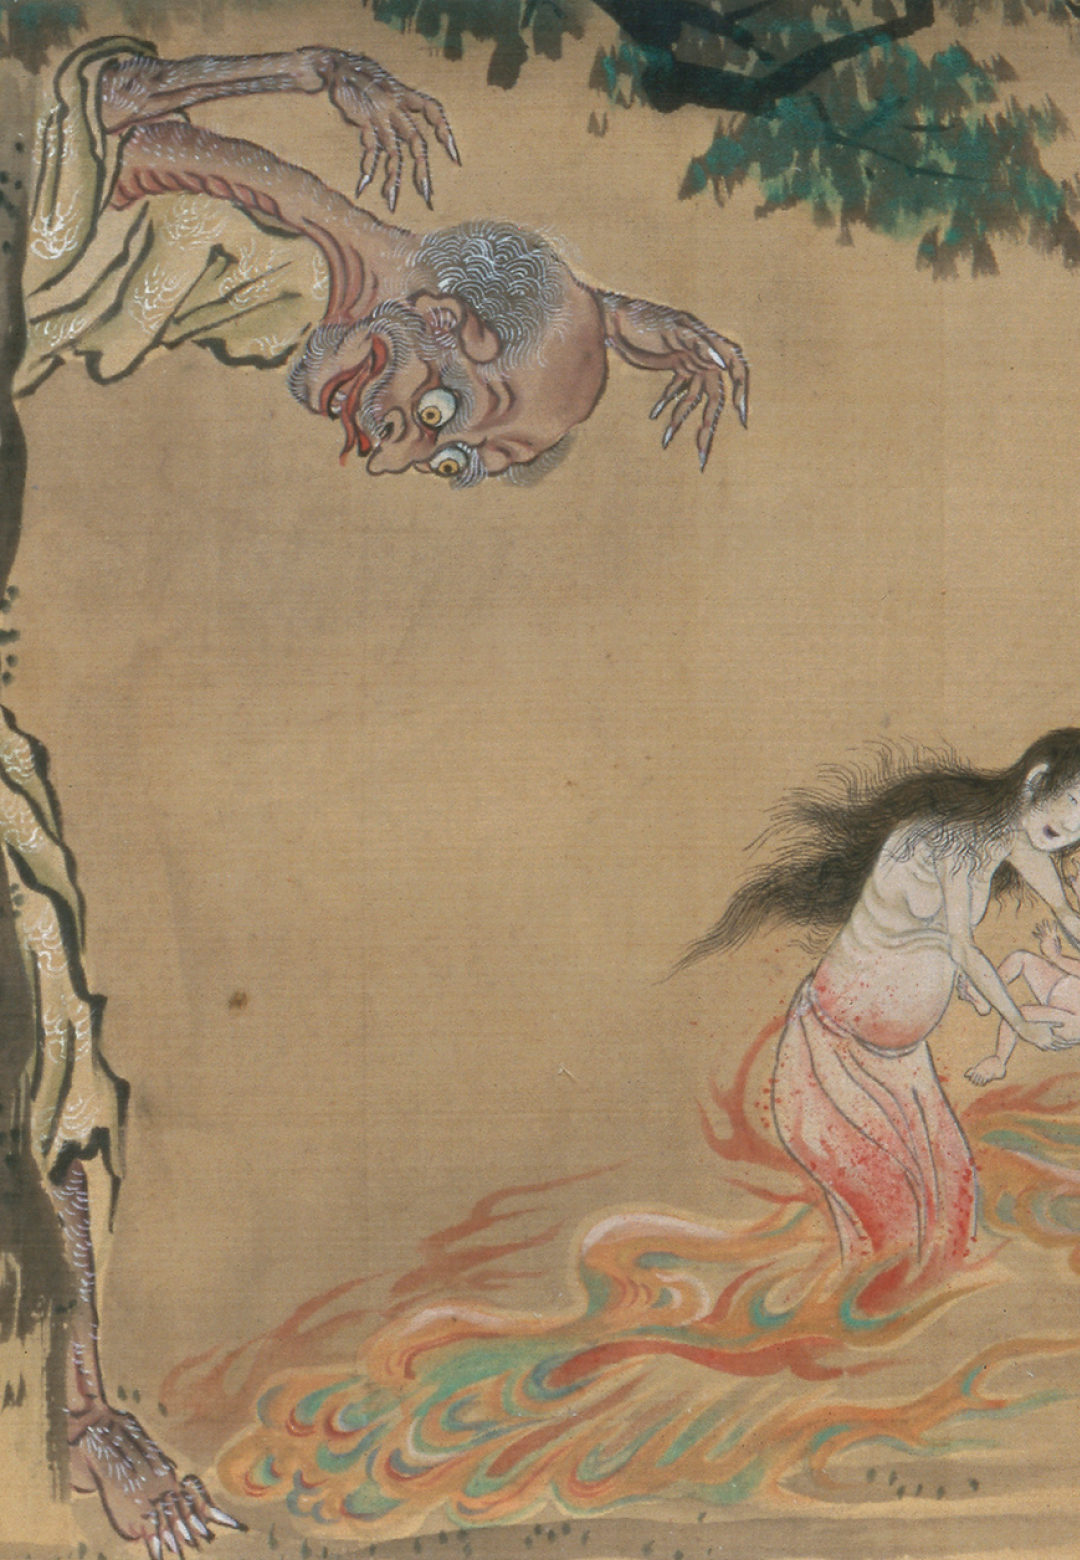 'Night procession of the hundred demons', a tale by Hyakki Yagyô | Japan Supernatural | Museum of Fine Arts, Boston / Art Gallery of New South Wales | STIRworld